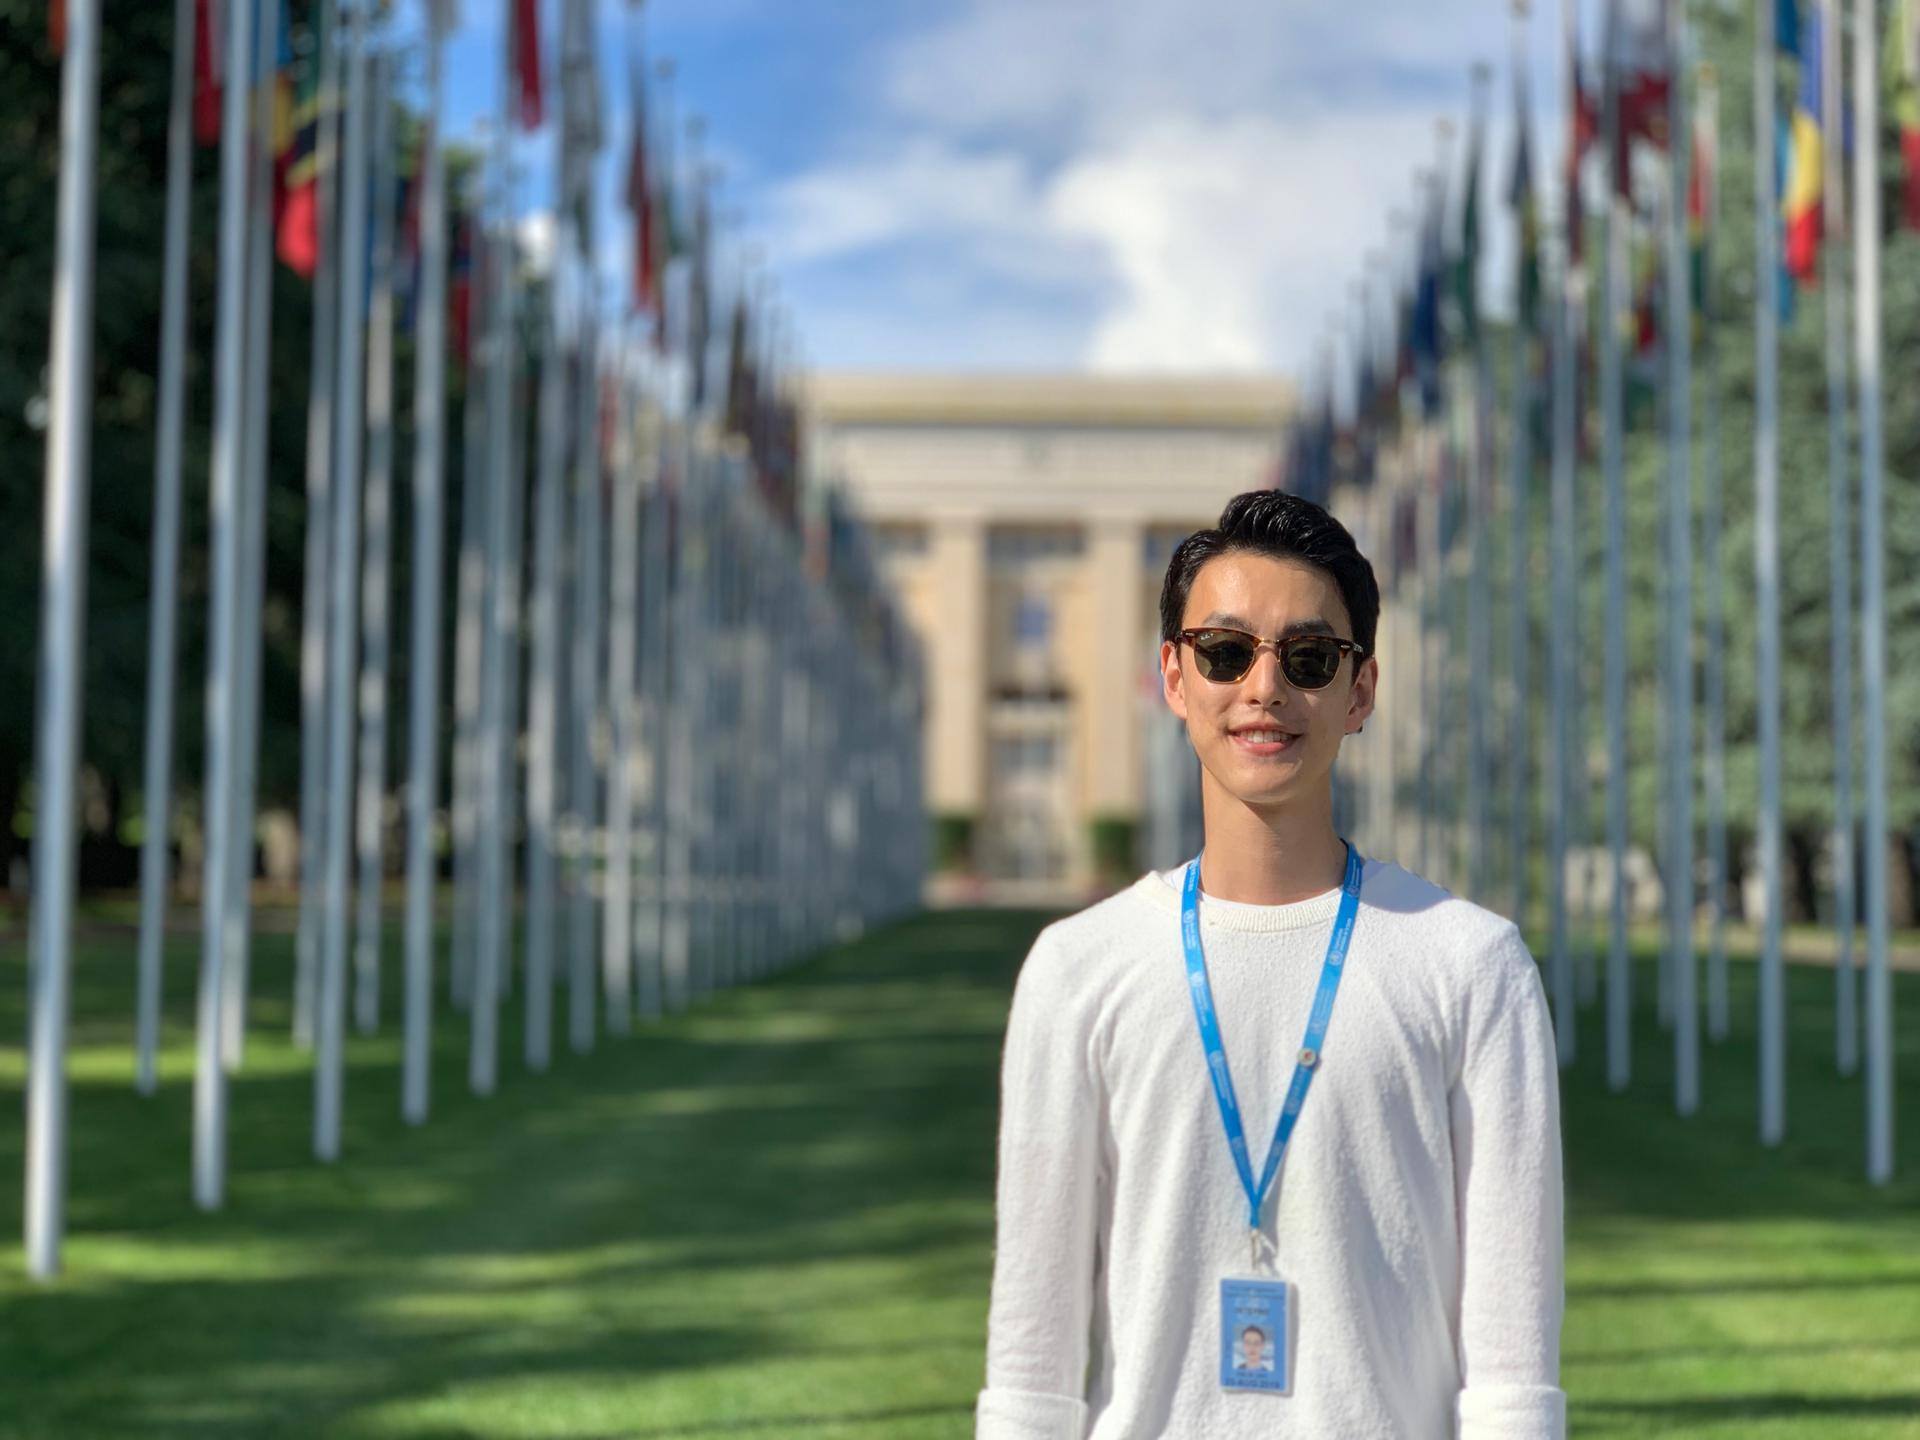 John standing outside the United Nations building on a field of grass